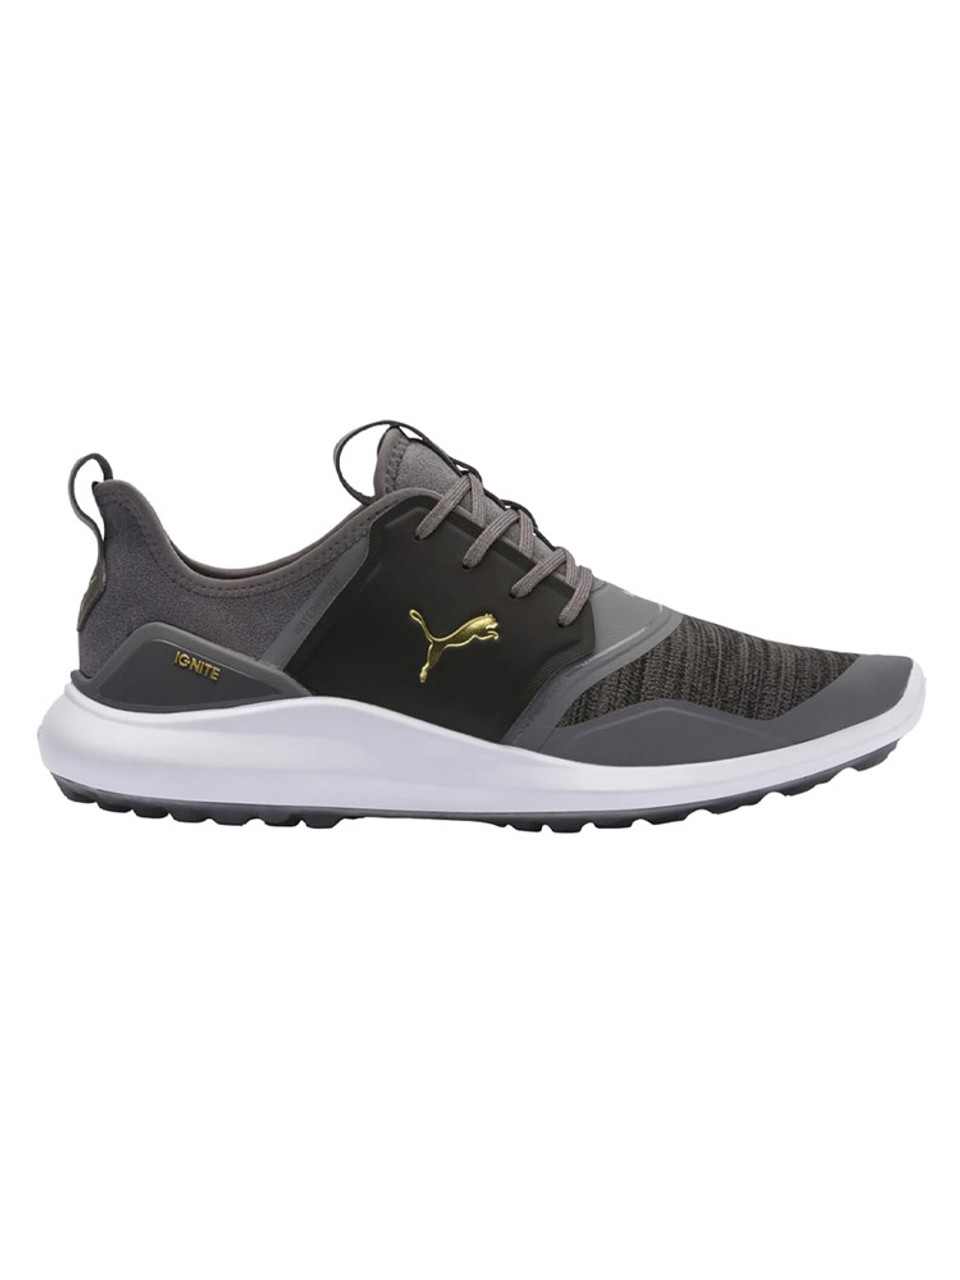 301ec5ee586 Puma Ignite NXT Golf Shoes - Quiet Shade - Mens For Sale